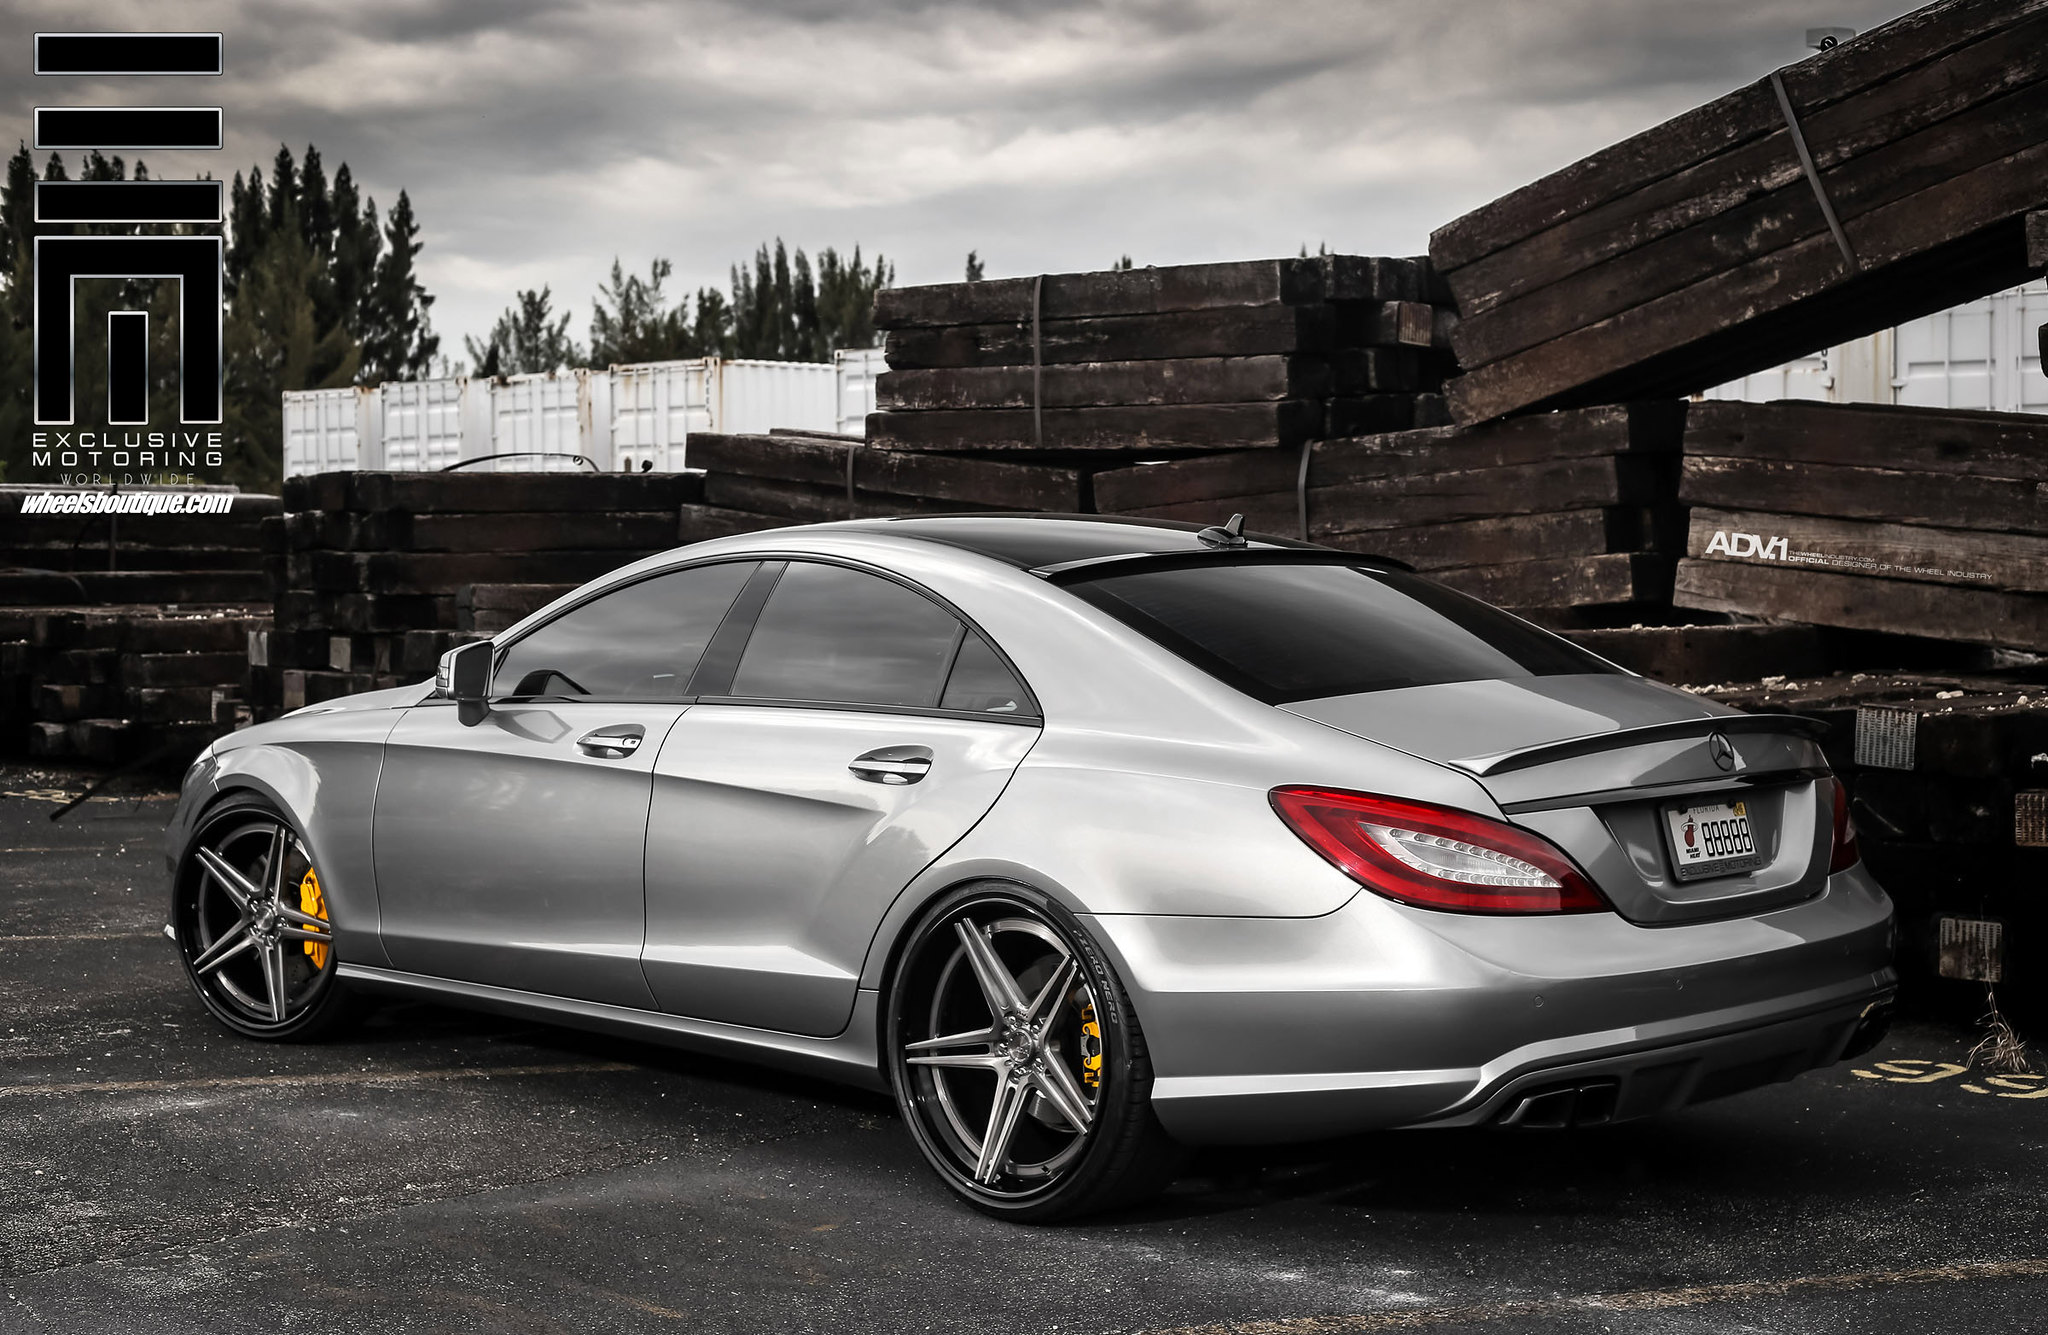 Double take mercedes cls550 bmw m5 forum and m6 forums for Mercedes benz a1 service